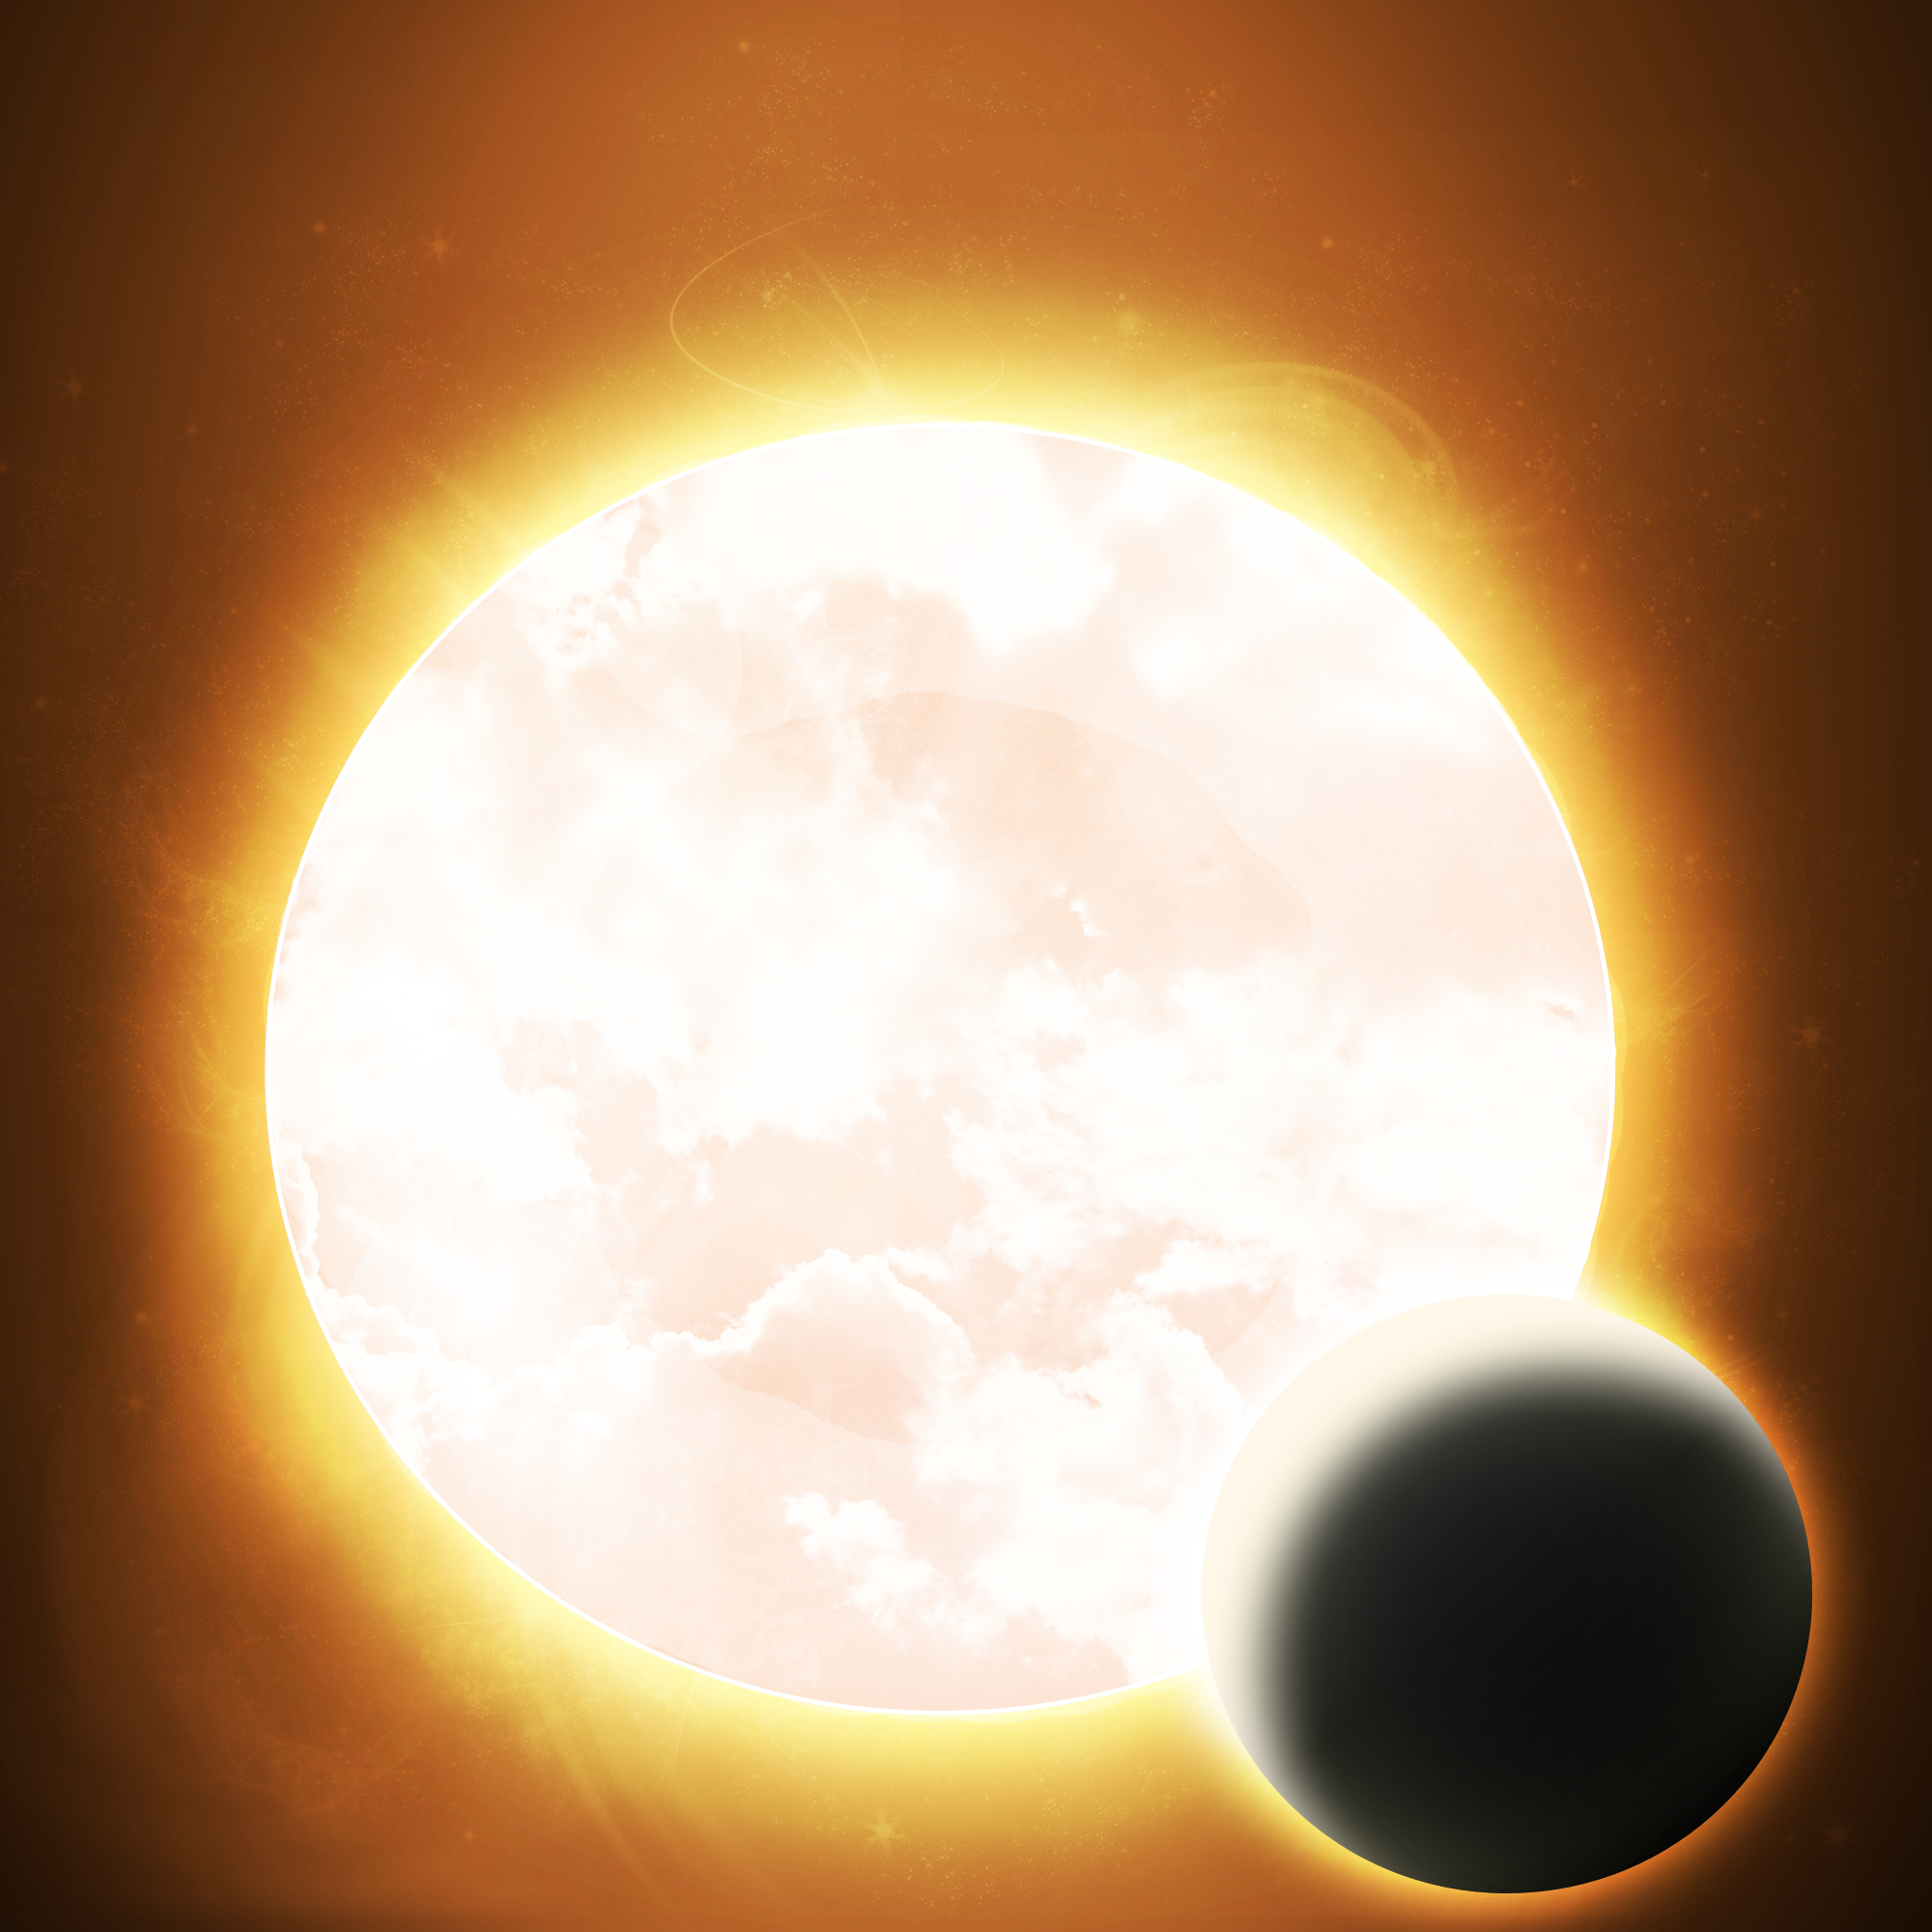 A dying star